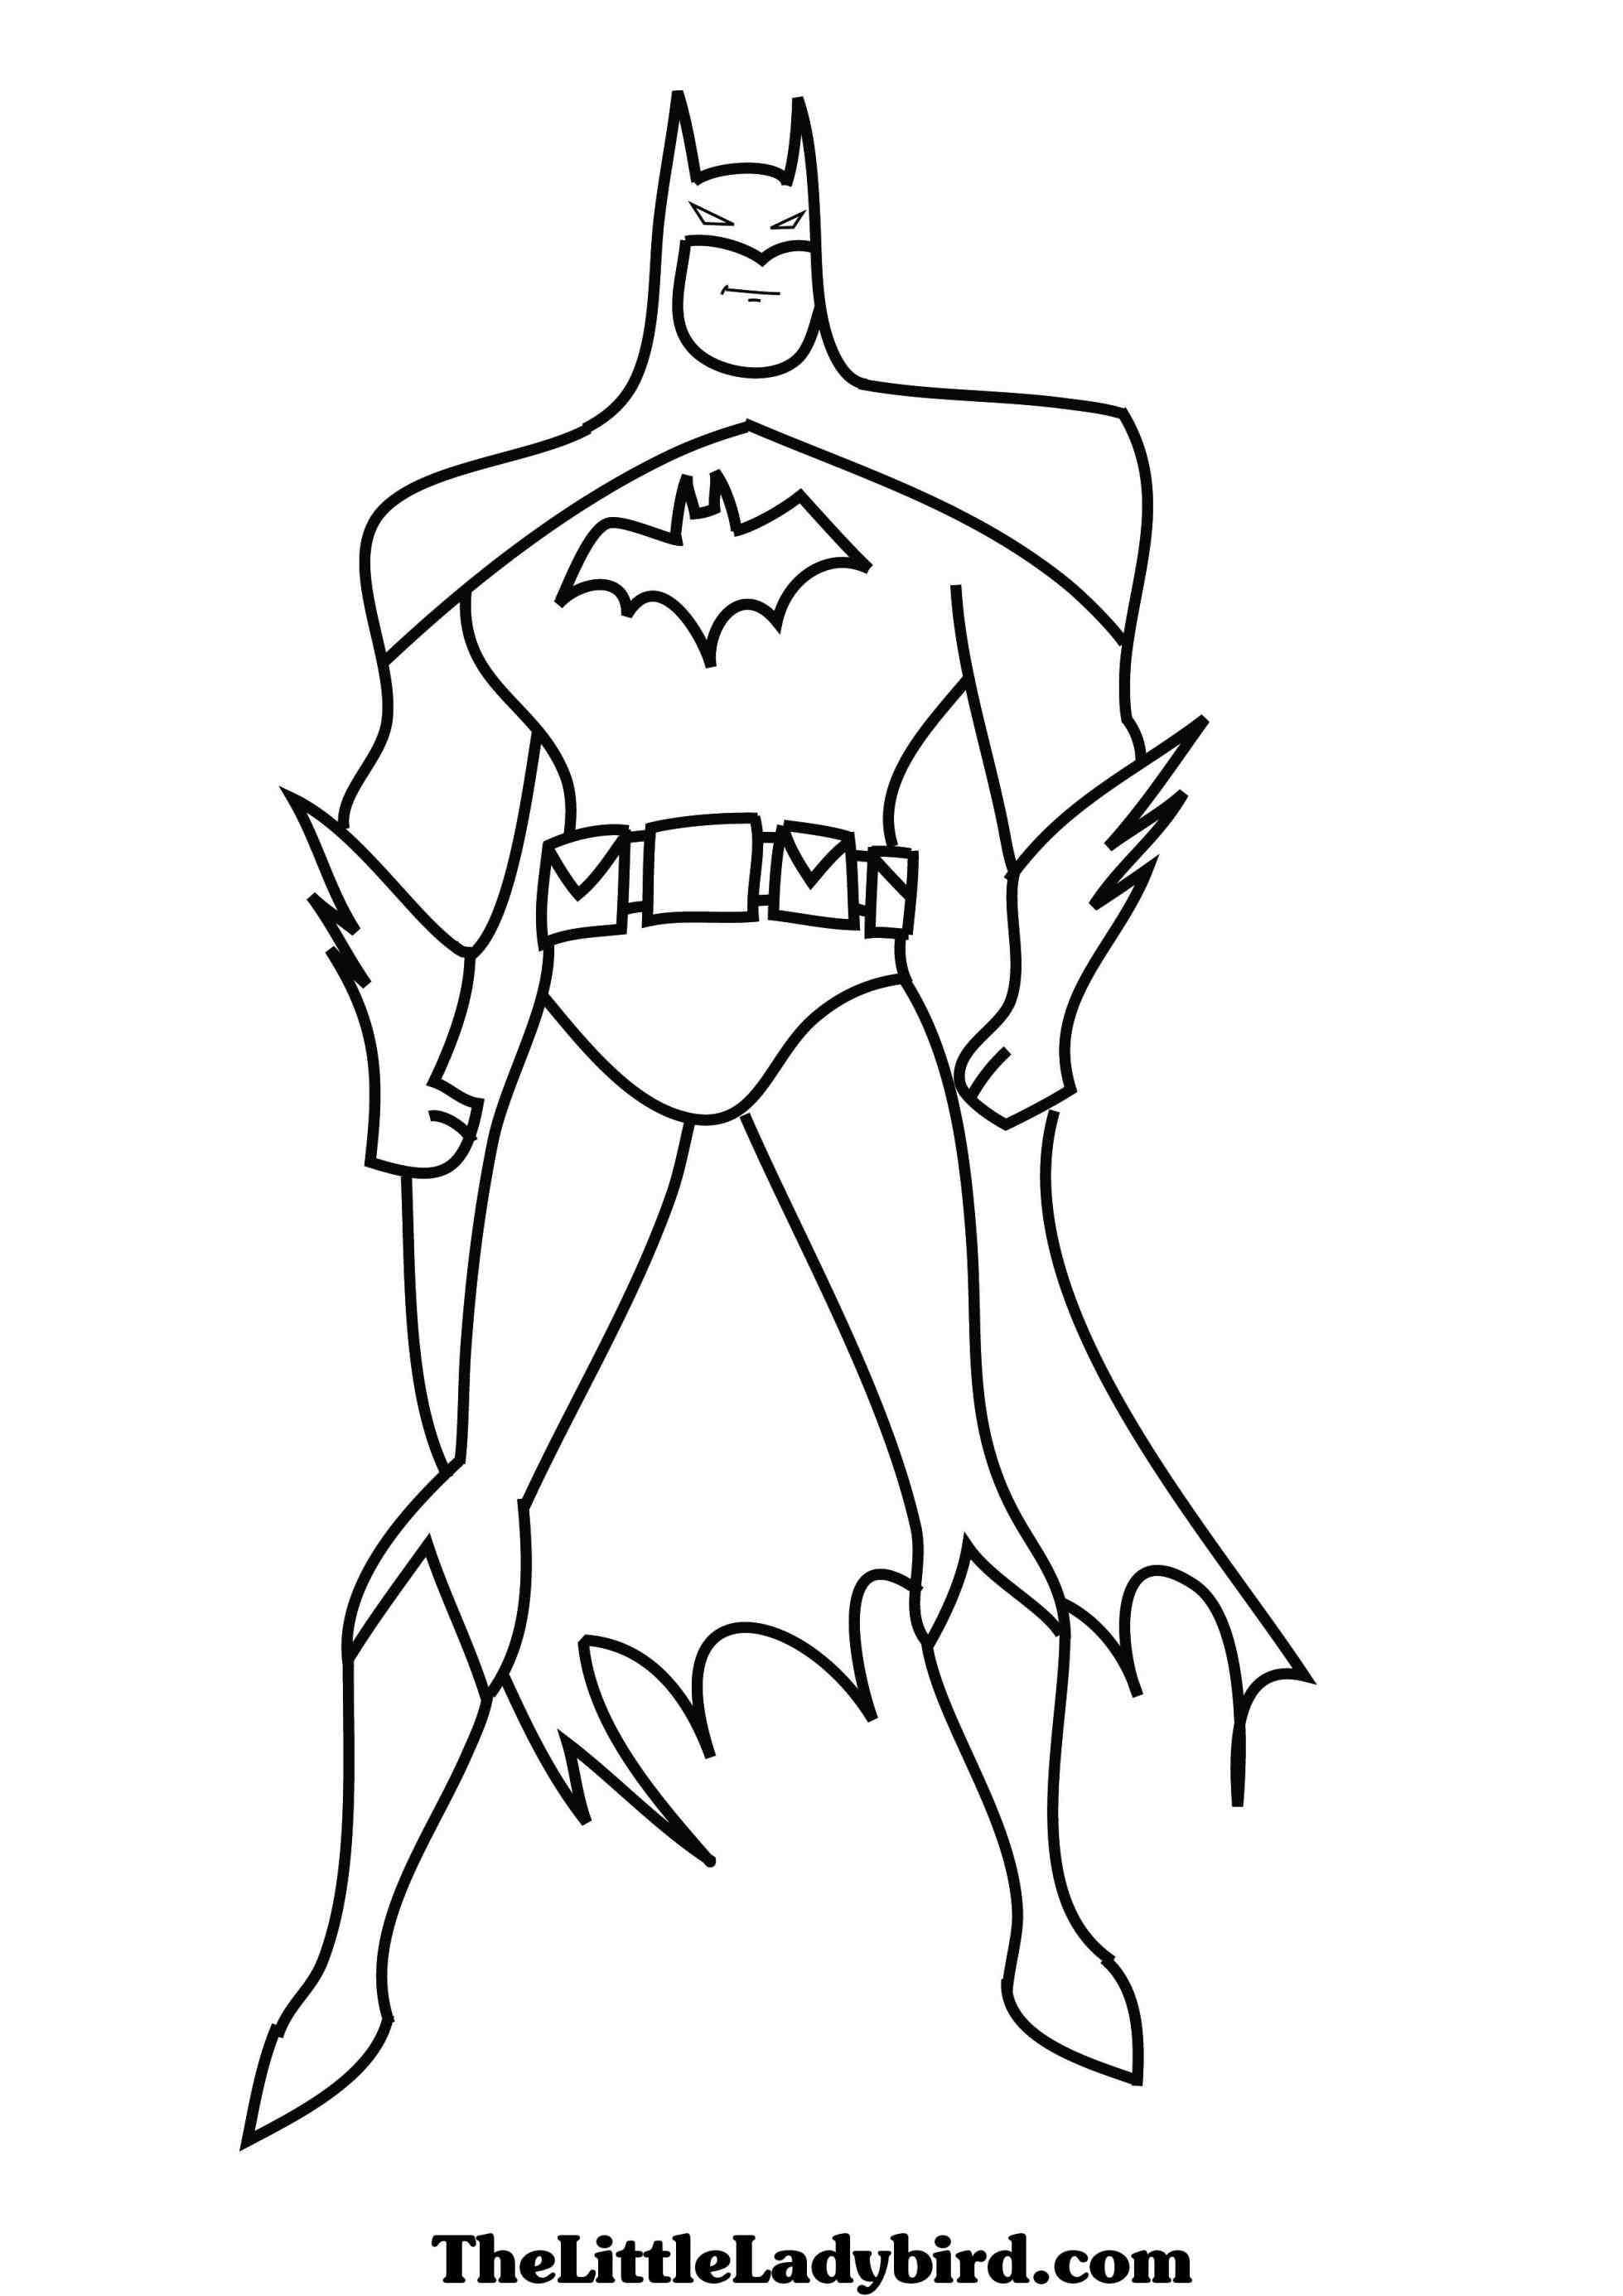 Batman Animated Series Coloring Pages Batman Coloring Pages